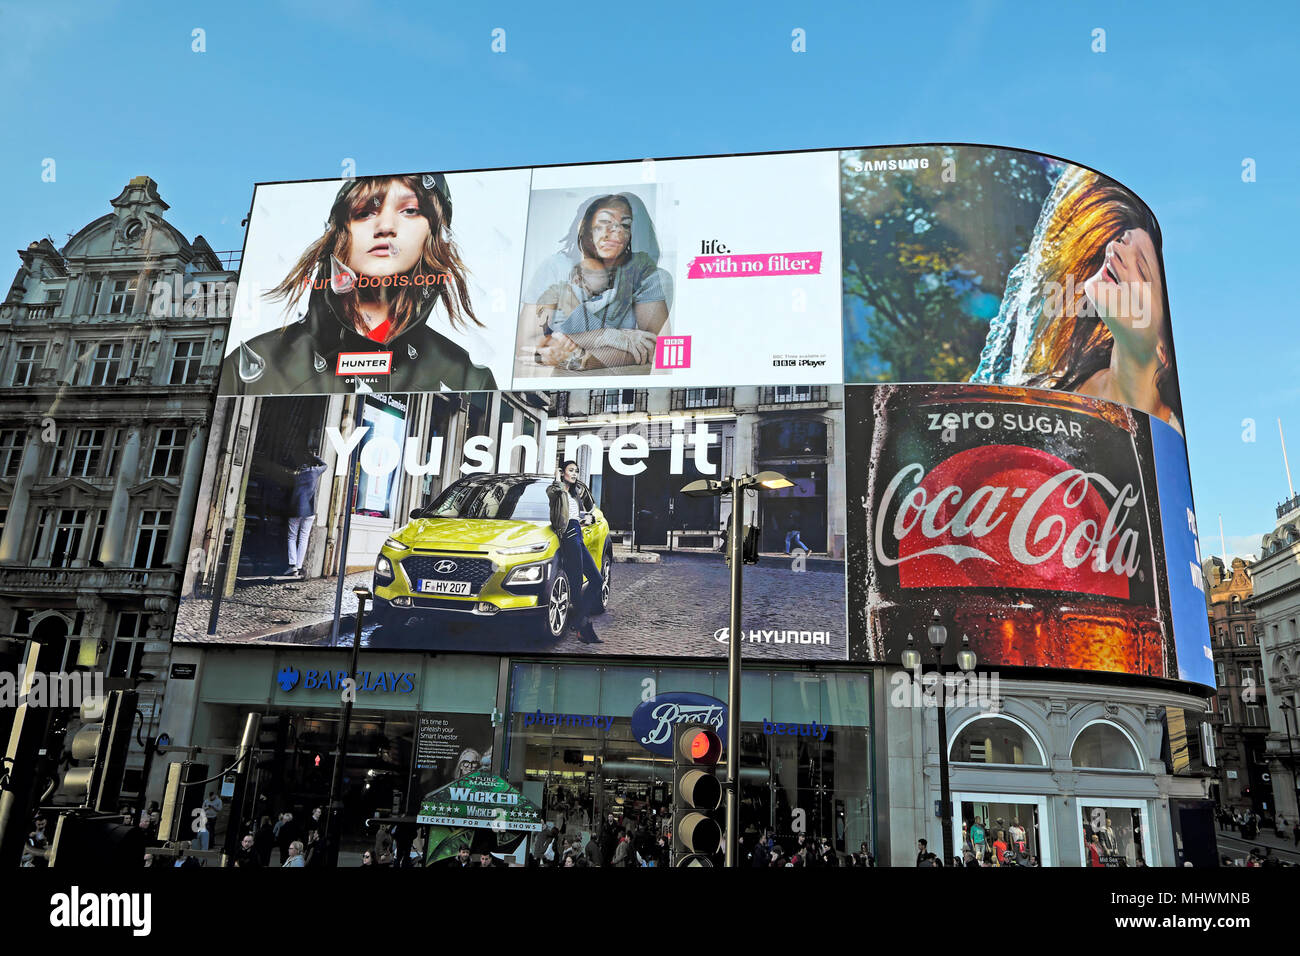 Hunter Boots, Hyundai, Coca Cola, BBC III and Samsung adverts on an electronic advertising billboard Piccadilly Circus, London England UK KATHY DEWITT - Stock Image